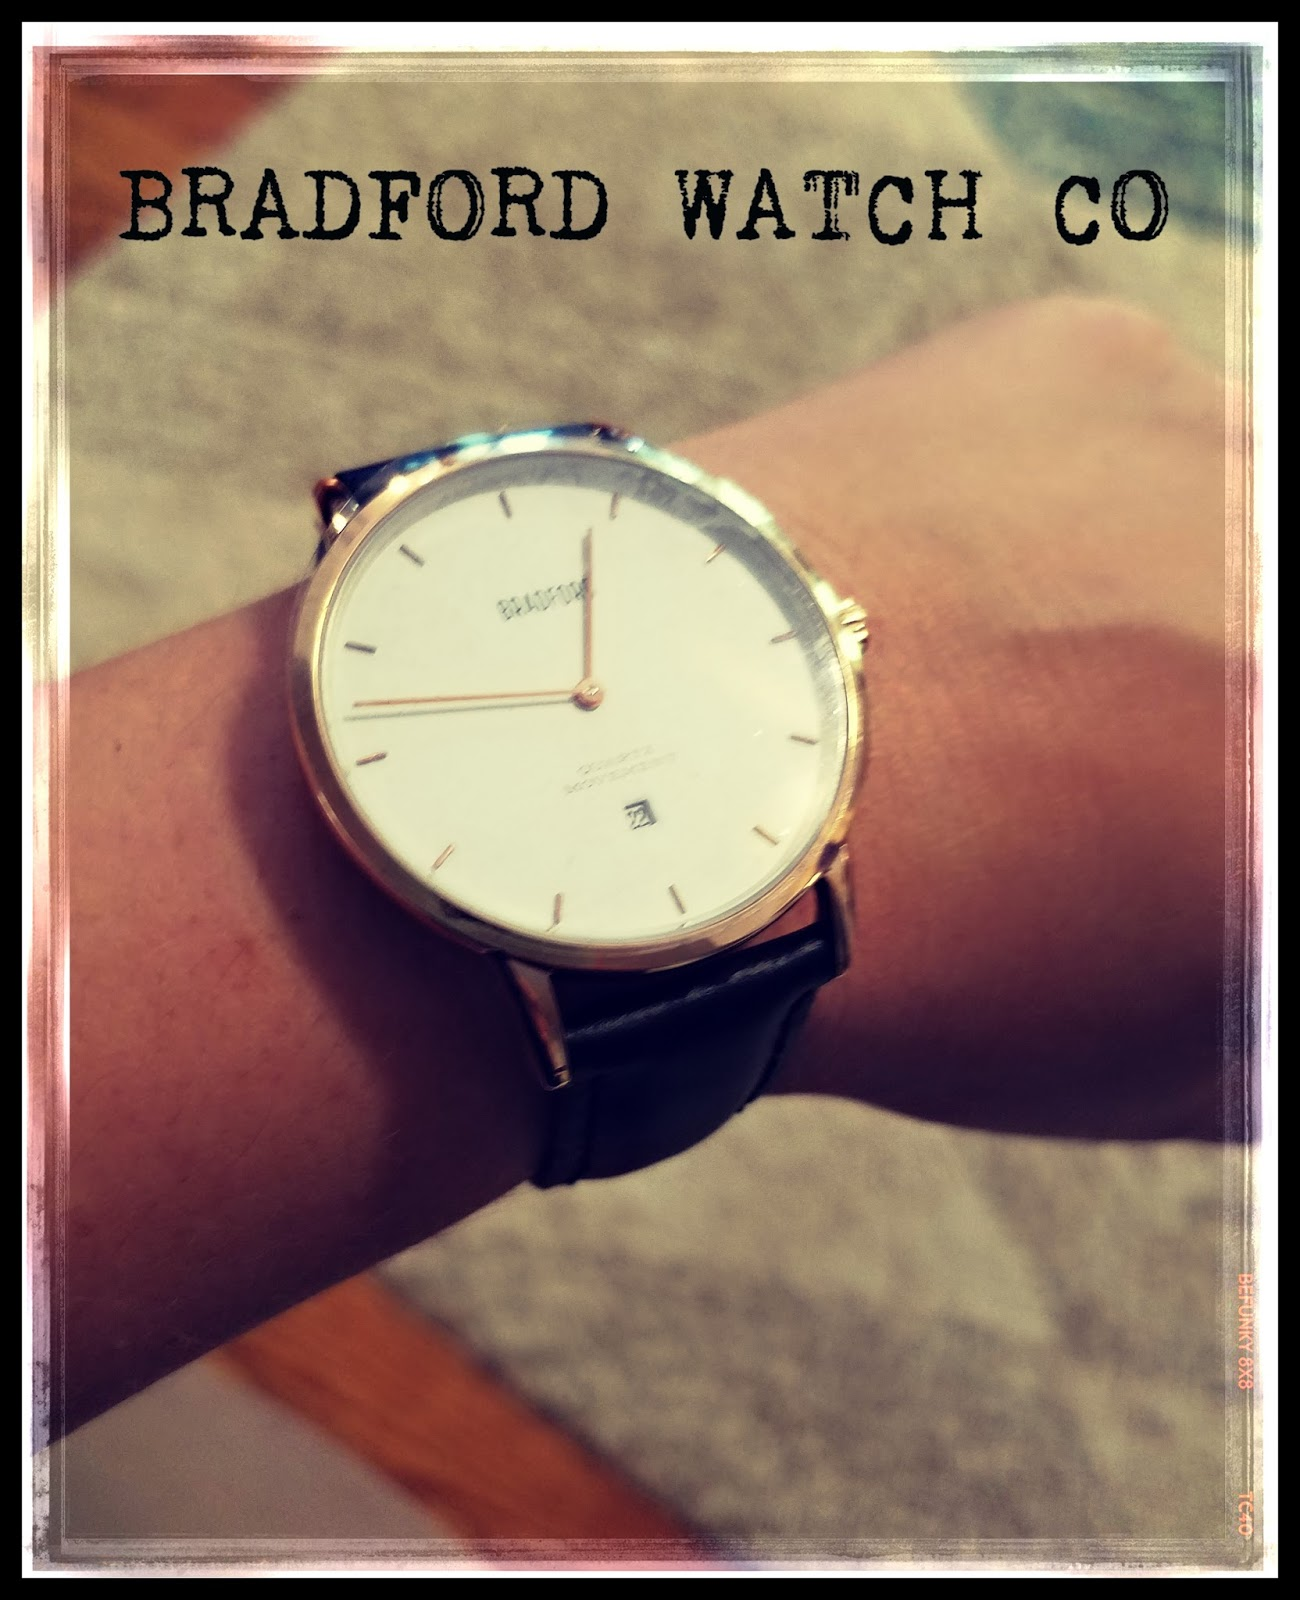 Time well spent with a sleek and timeless watch from bradford watch time well spent with a sleek and timeless watch from bradford watch company mbpfallfashion17 solutioingenieria Image collections